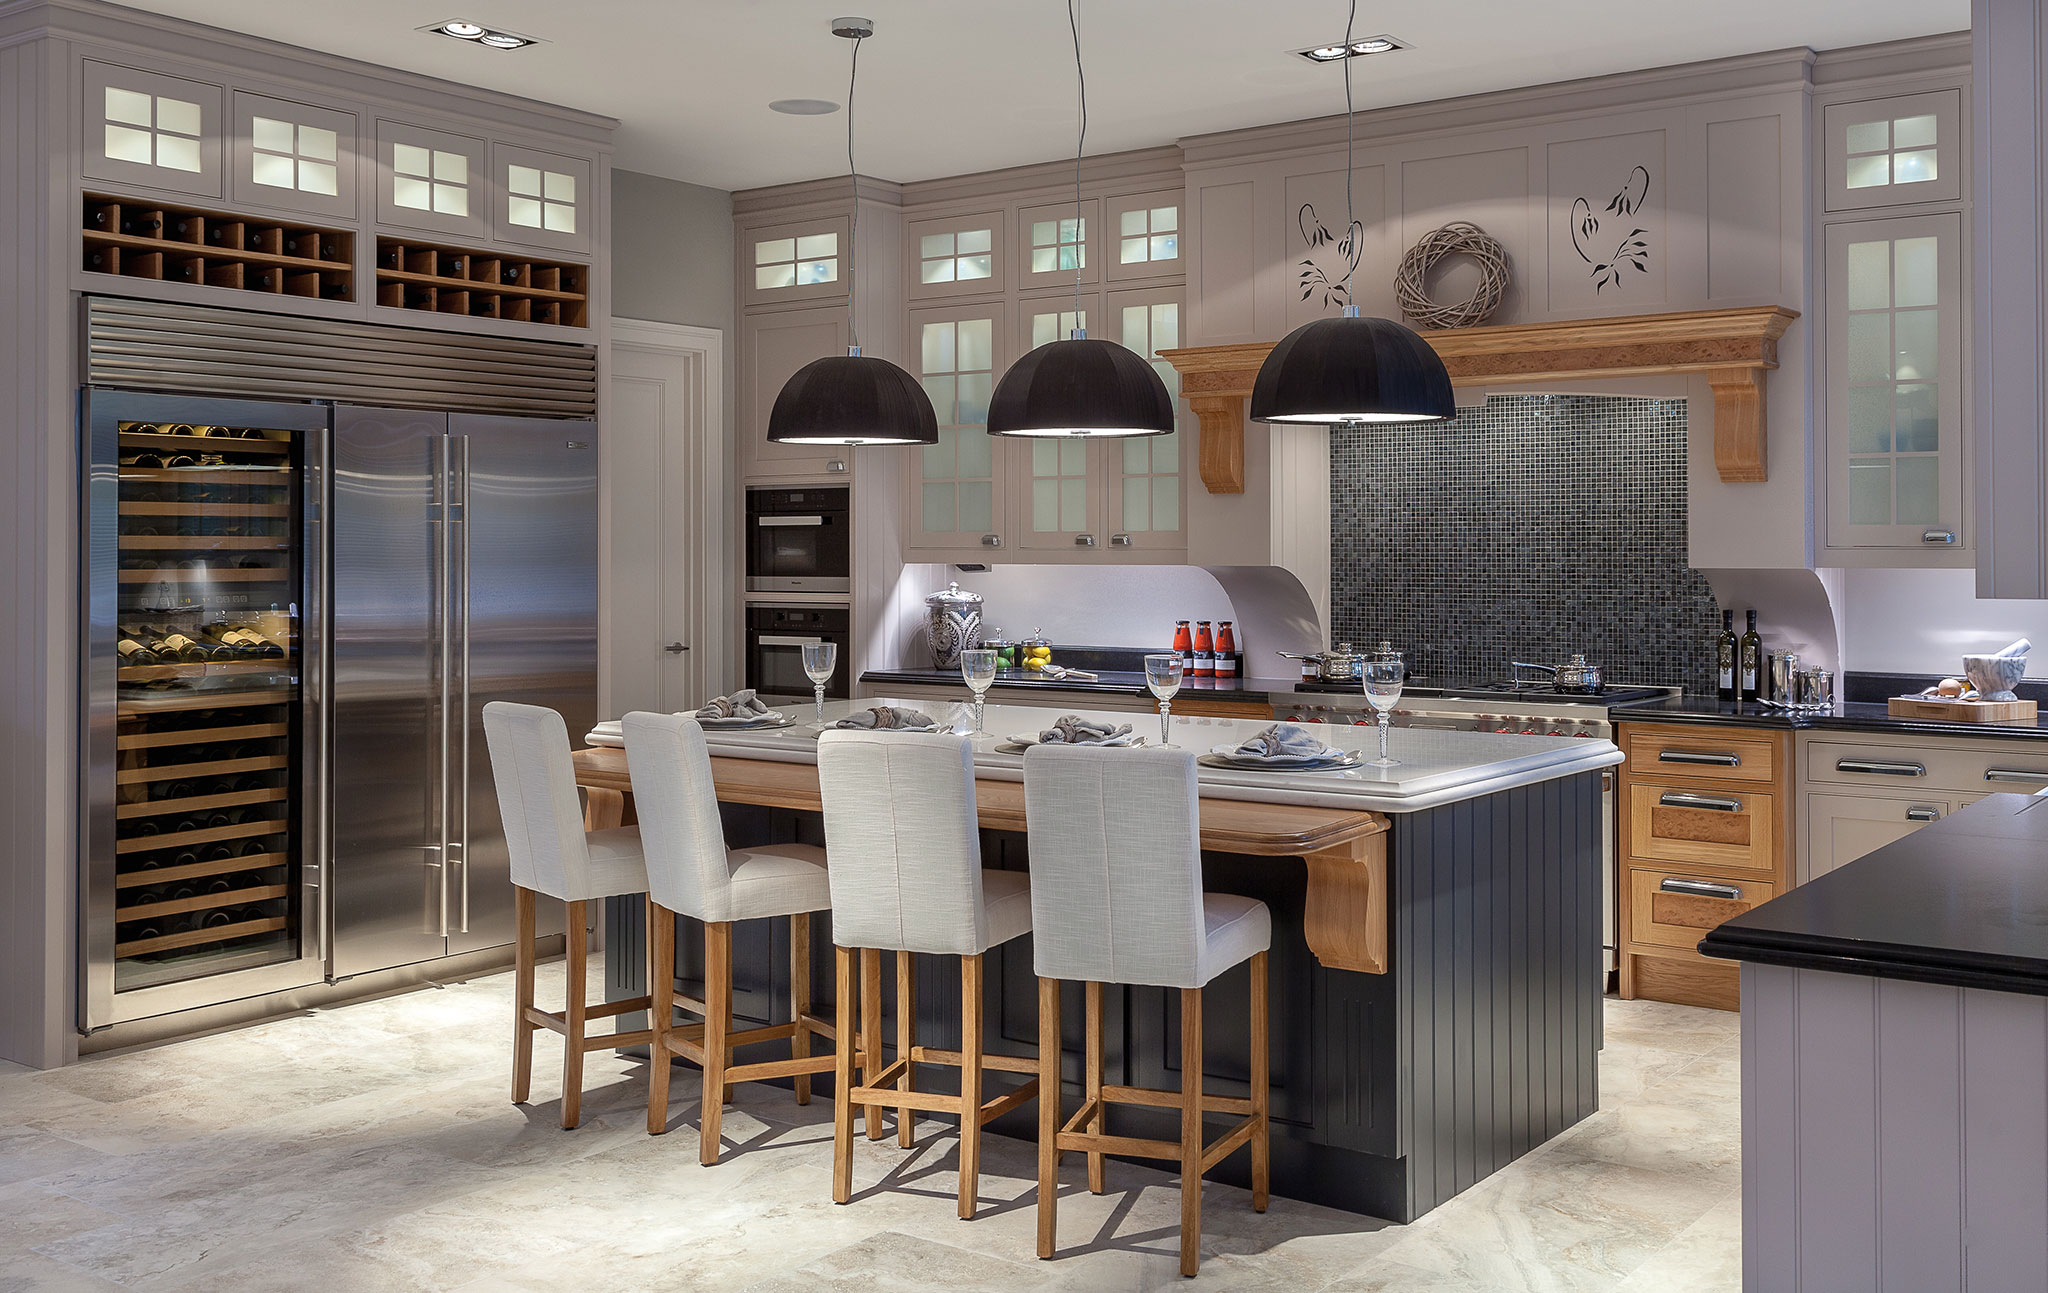 Good ... Wolf, And Cove Kitchen Design Contest, Evesley House Won Gold At The  Prestigious London Evening Standard Awards For U201cBest Luxury Development.u201d